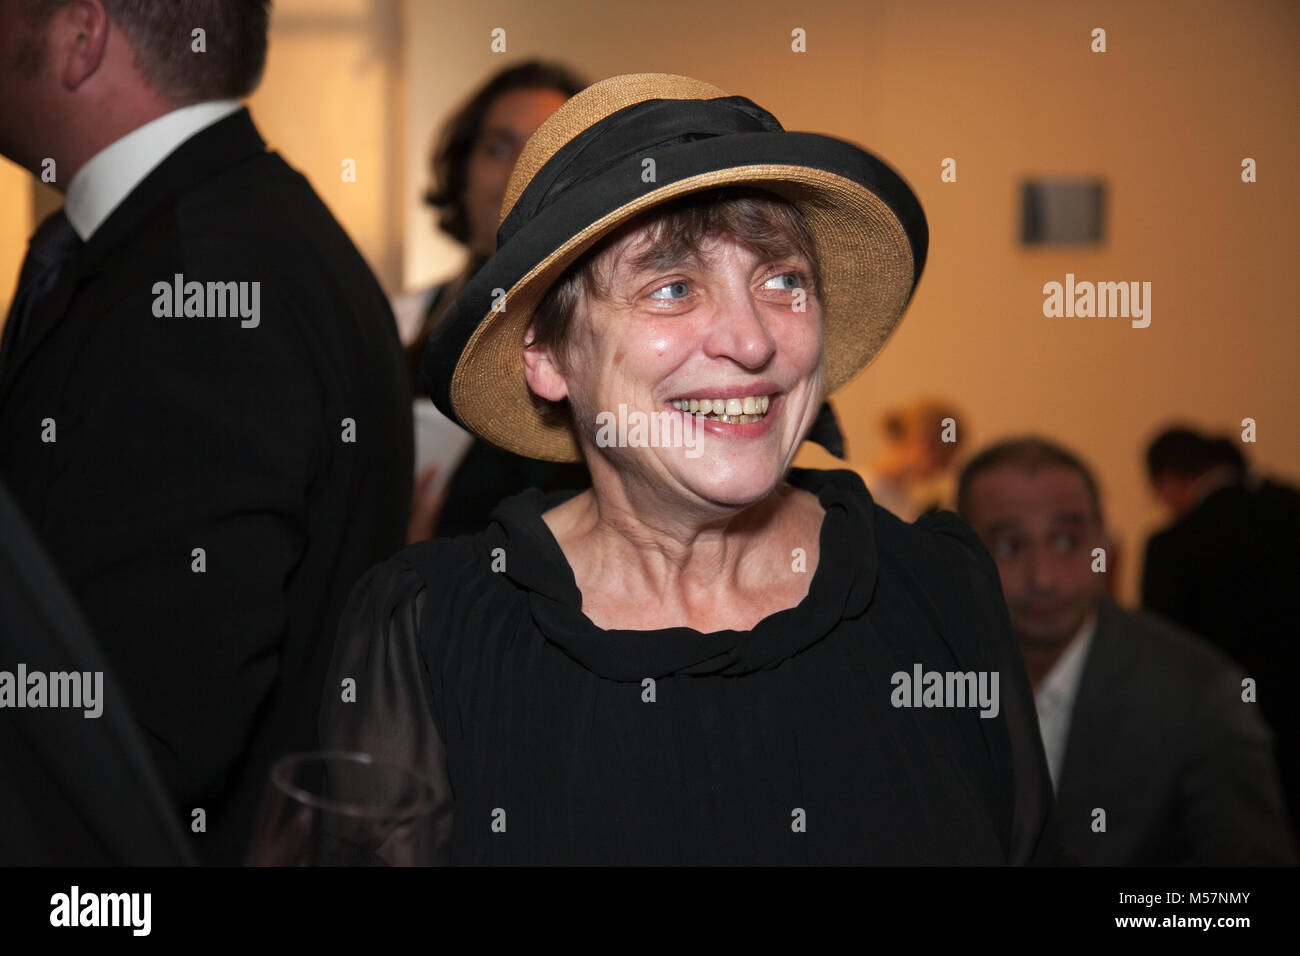 German actress Katharina Thalbach on an Event in Berlin. - Stock Image